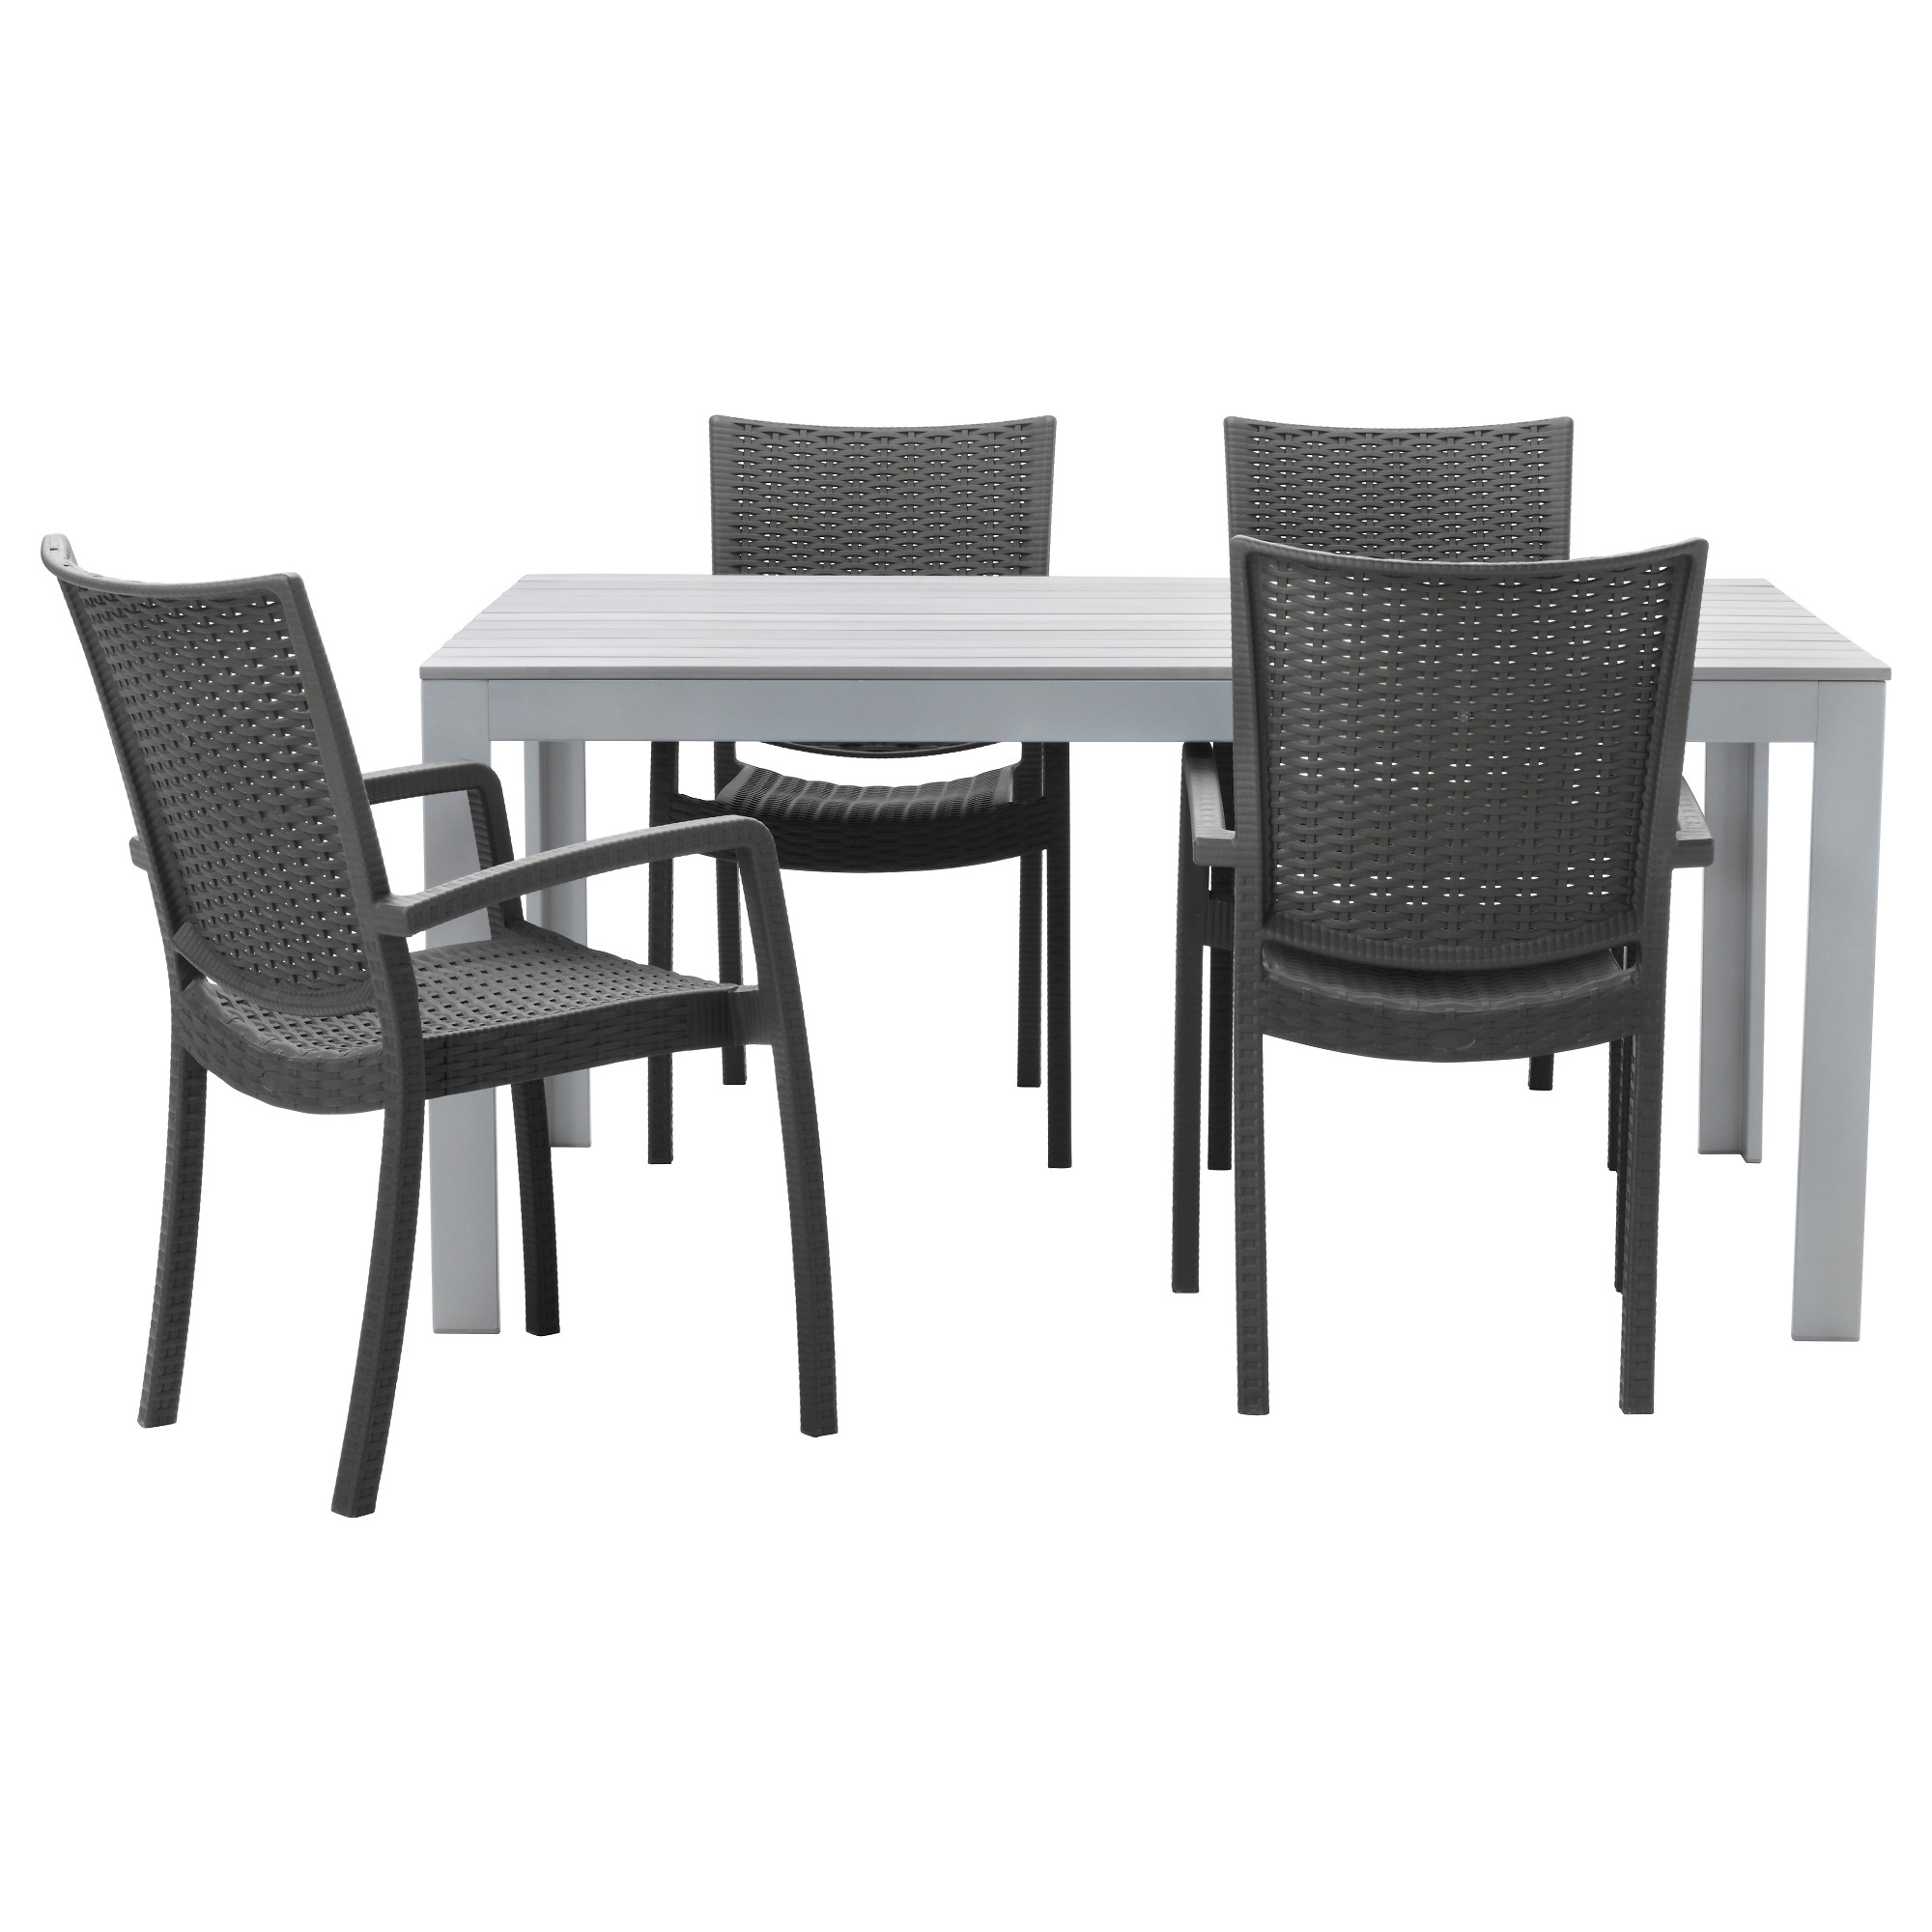 Black outdoor dining table - Falster Innamo Table And 4 Armchairs Outdoor Gray Dark Gray